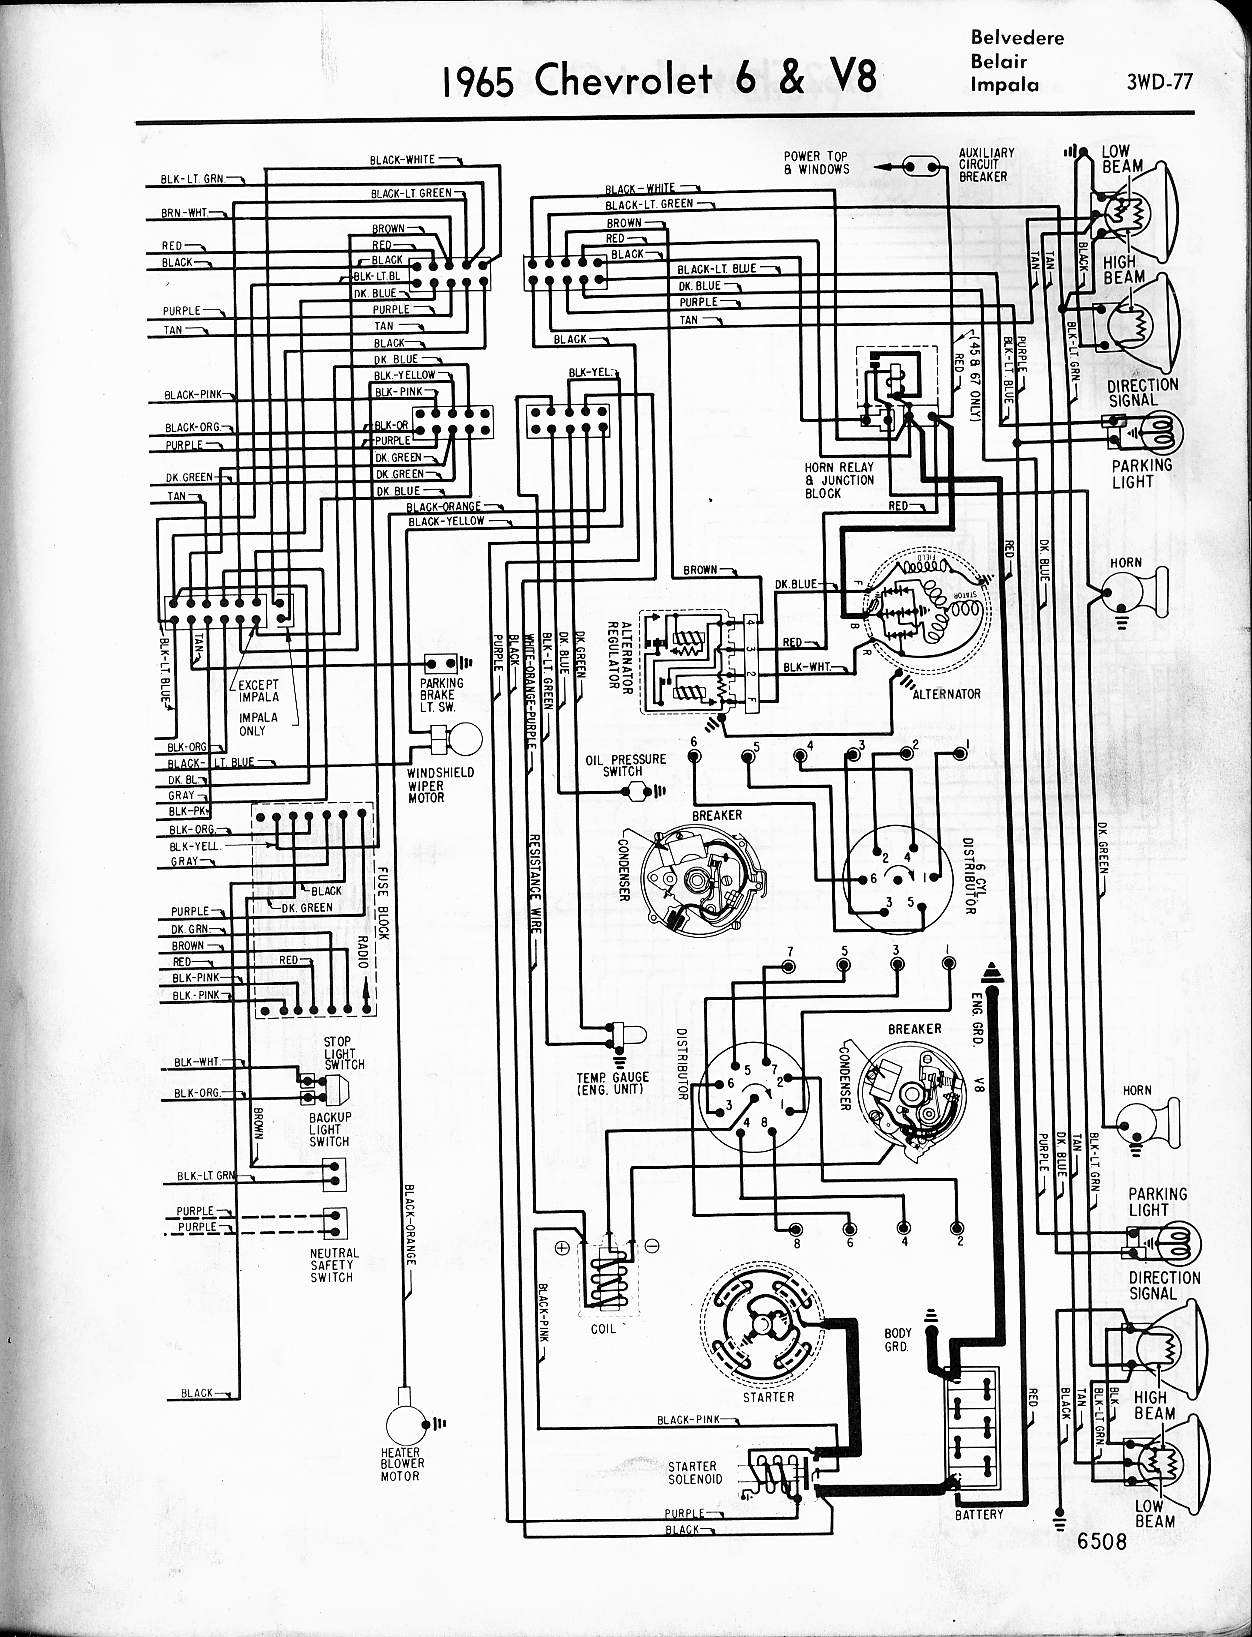 chevy truck underhood wiring diagrams chuck's chevy truck pages C70 Wiring Diagram  71 Ford Truck Wiring Diagram Wildcat Wiring Diagram G Body Wiring Diagram